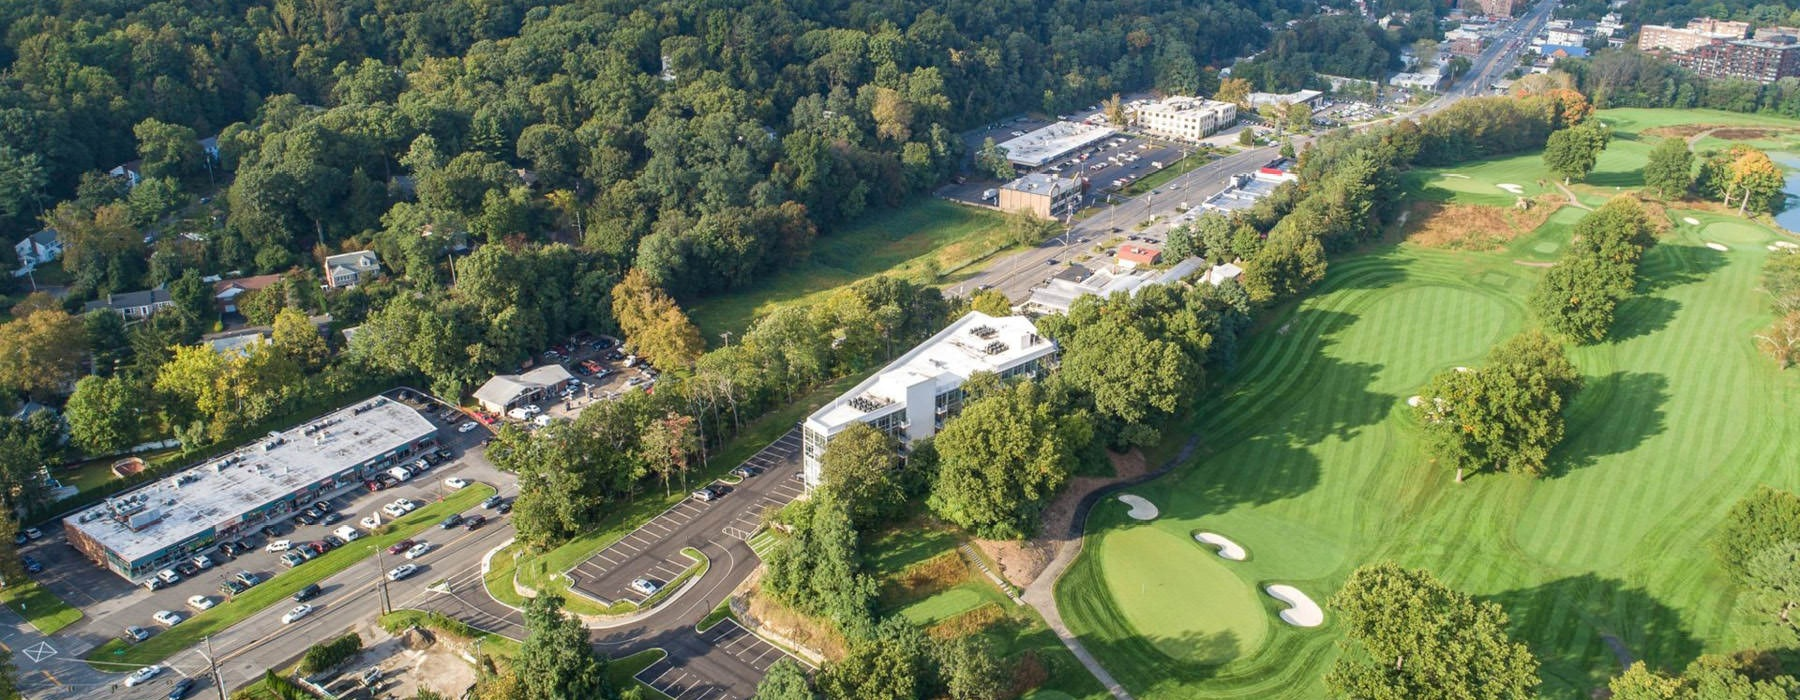 aerial view of Scarsdale Golf Club near Glasshouse 250